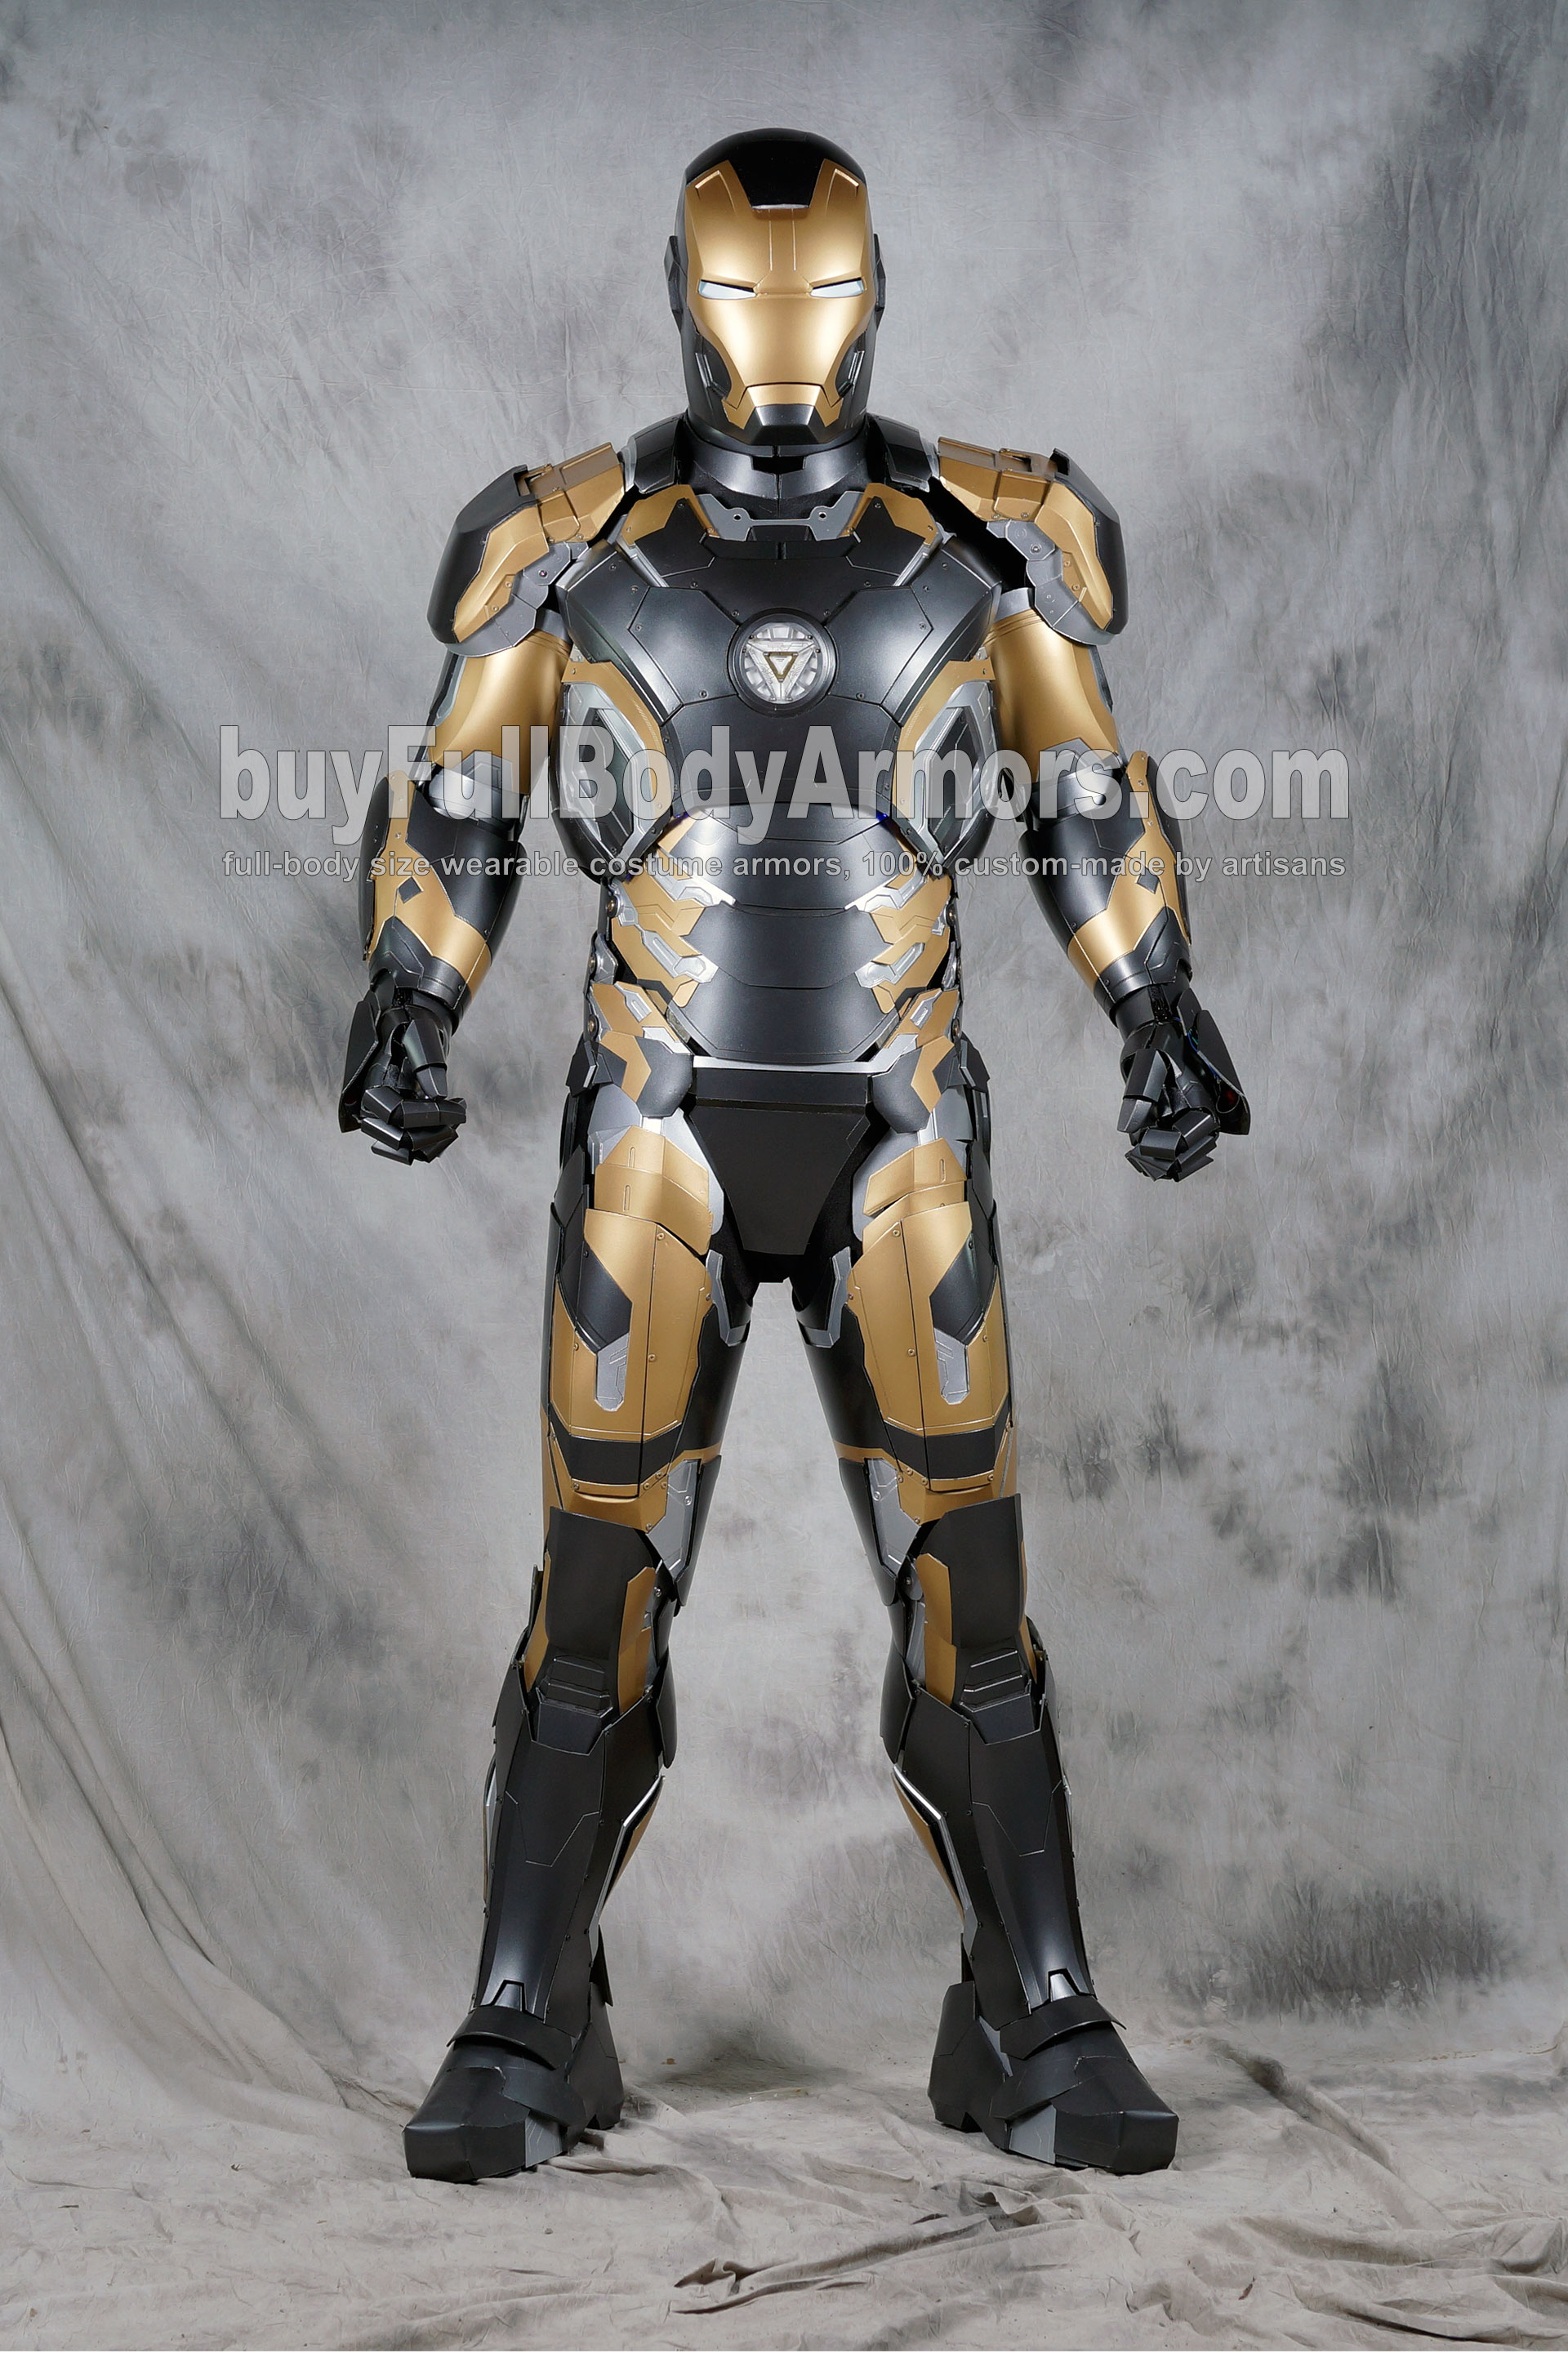 [Special Edition] Black Gold Wearable Iron Man Suit Mark 43 XLIII Armor Costume  1